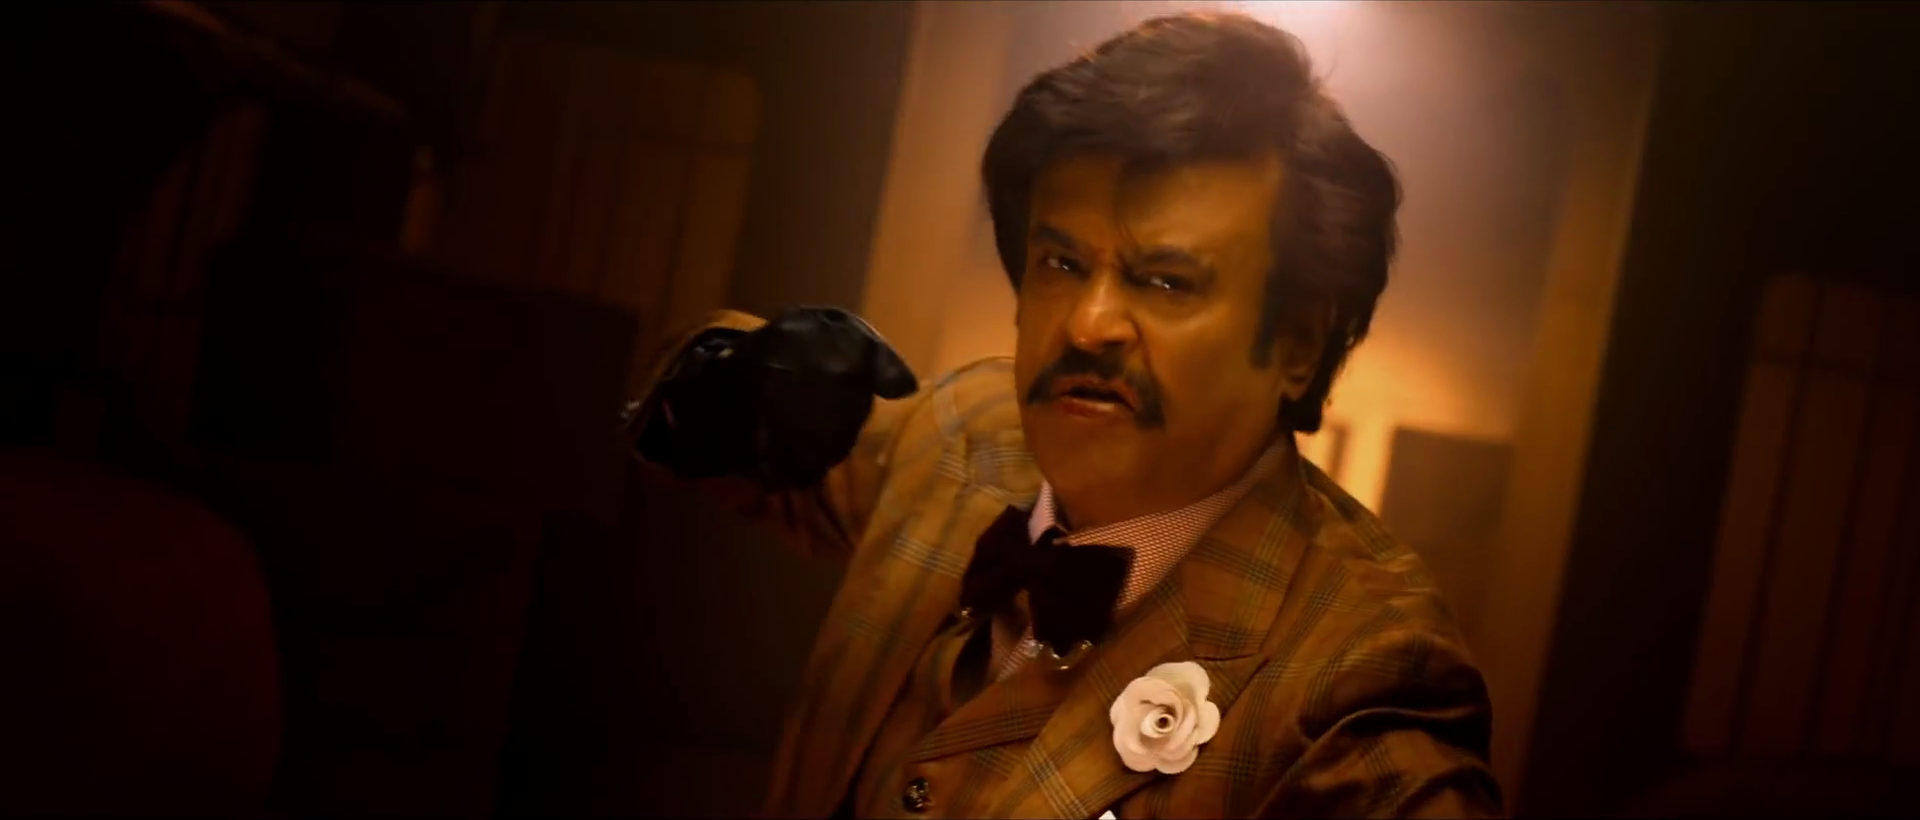 rajinikanth's-film-lingaa-official-teaser-hd-wallpaer